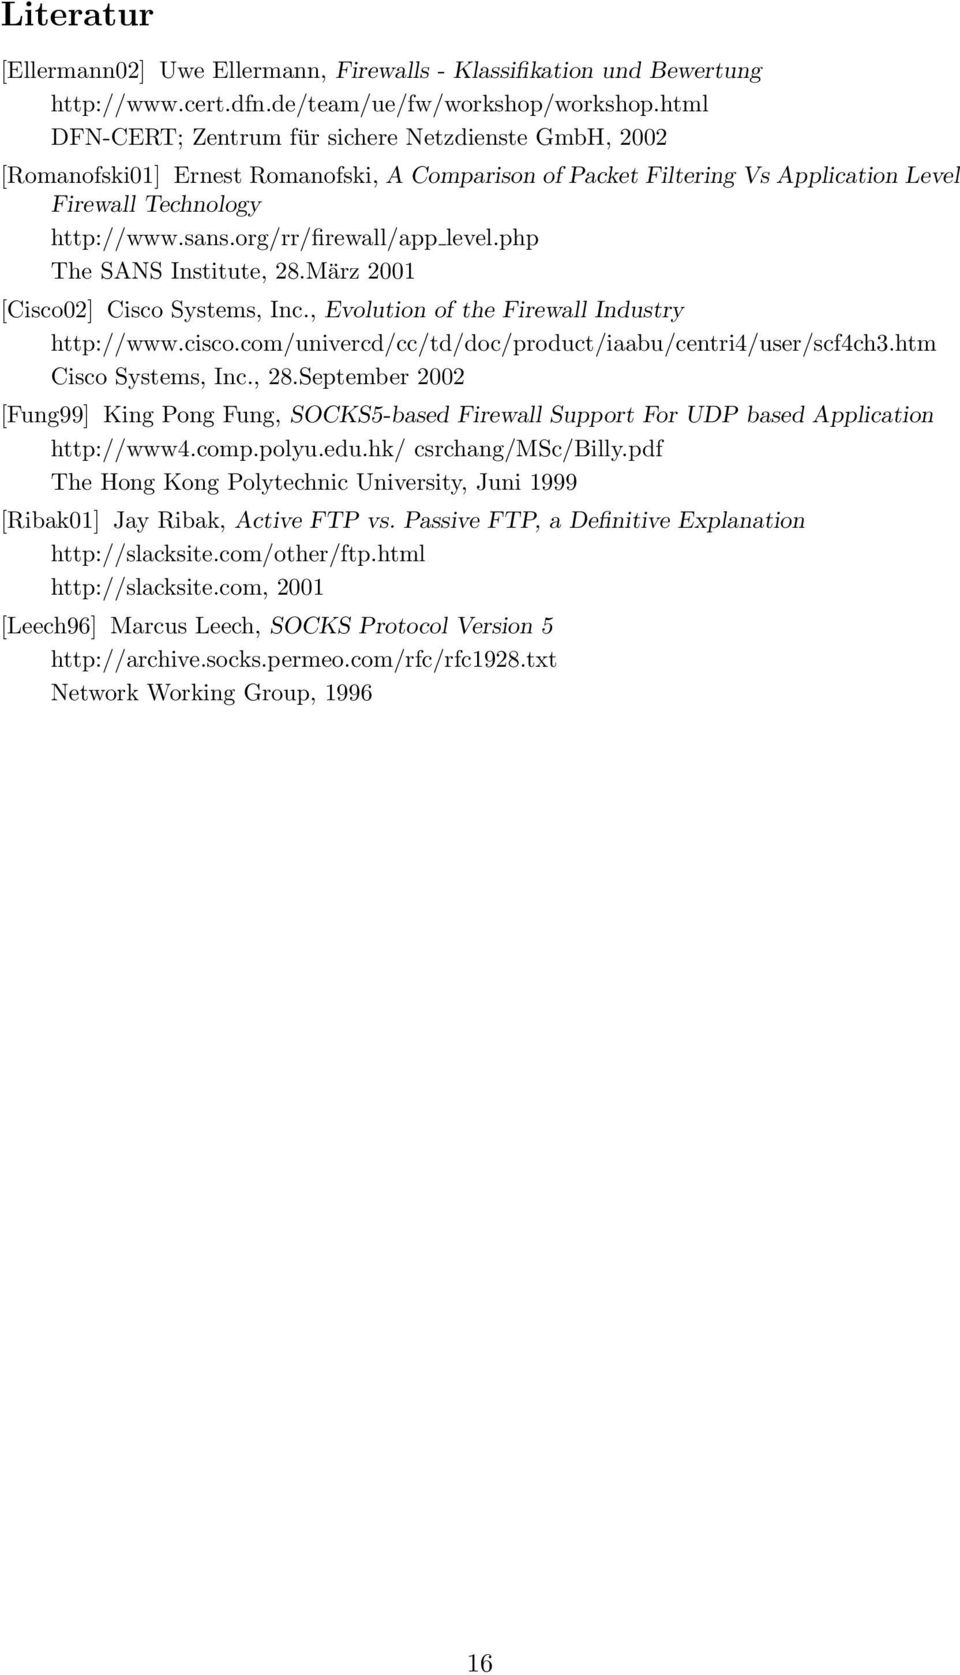 org/rr/firewall/app level.php The SANS Institute, 28.März 2001 [Cisco02] Cisco Systems, Inc., Evolution of the Firewall Industry http://www.cisco.